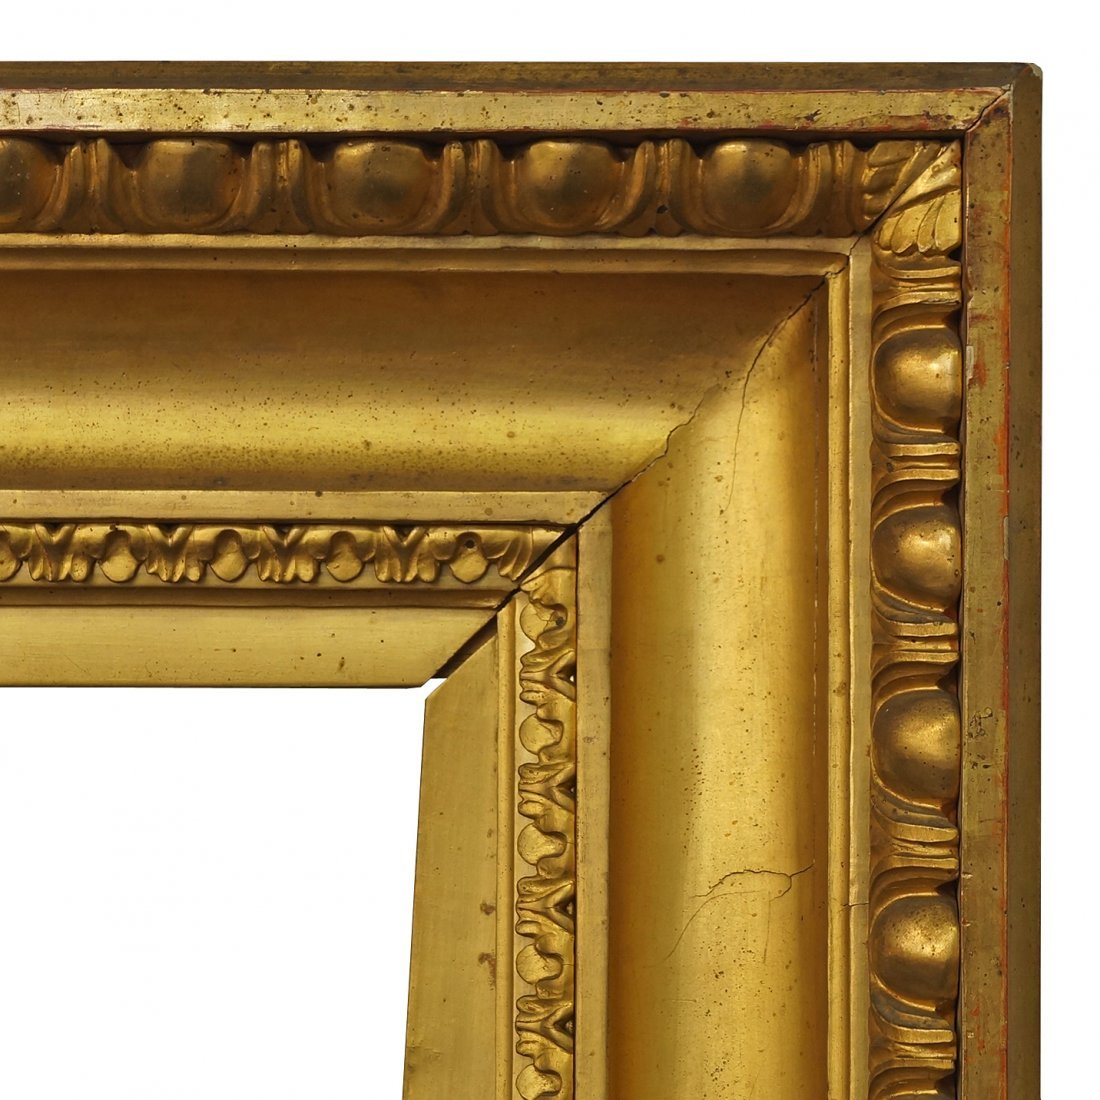 A French Gilded Neoclassical Style Frame, early-mid